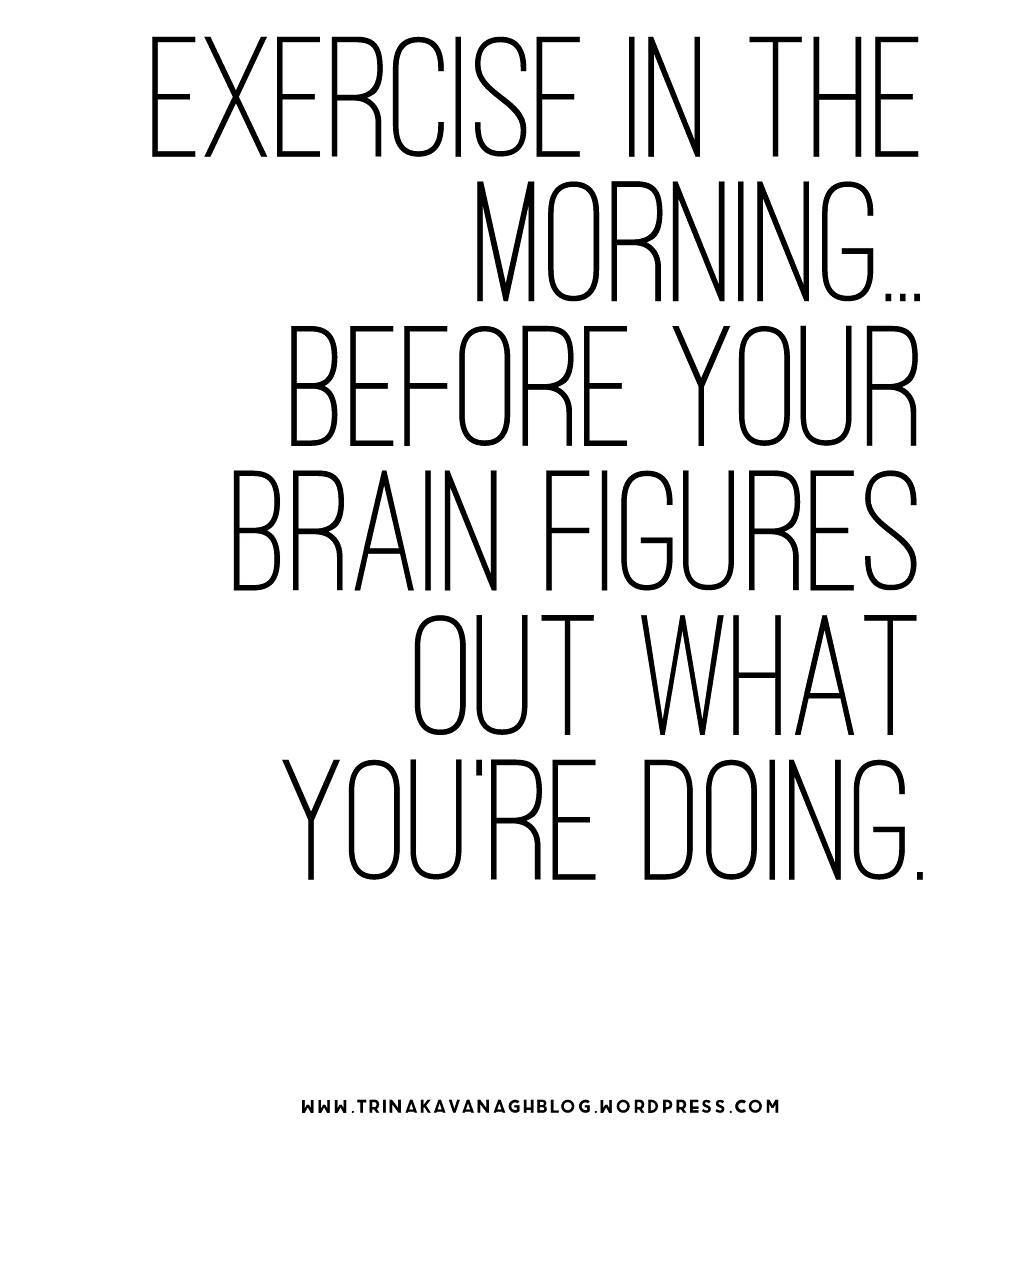 Monday Workout Quotes Popsugar Fitness Gym Quote Fitness Motivation Quotes Fitness Quotes